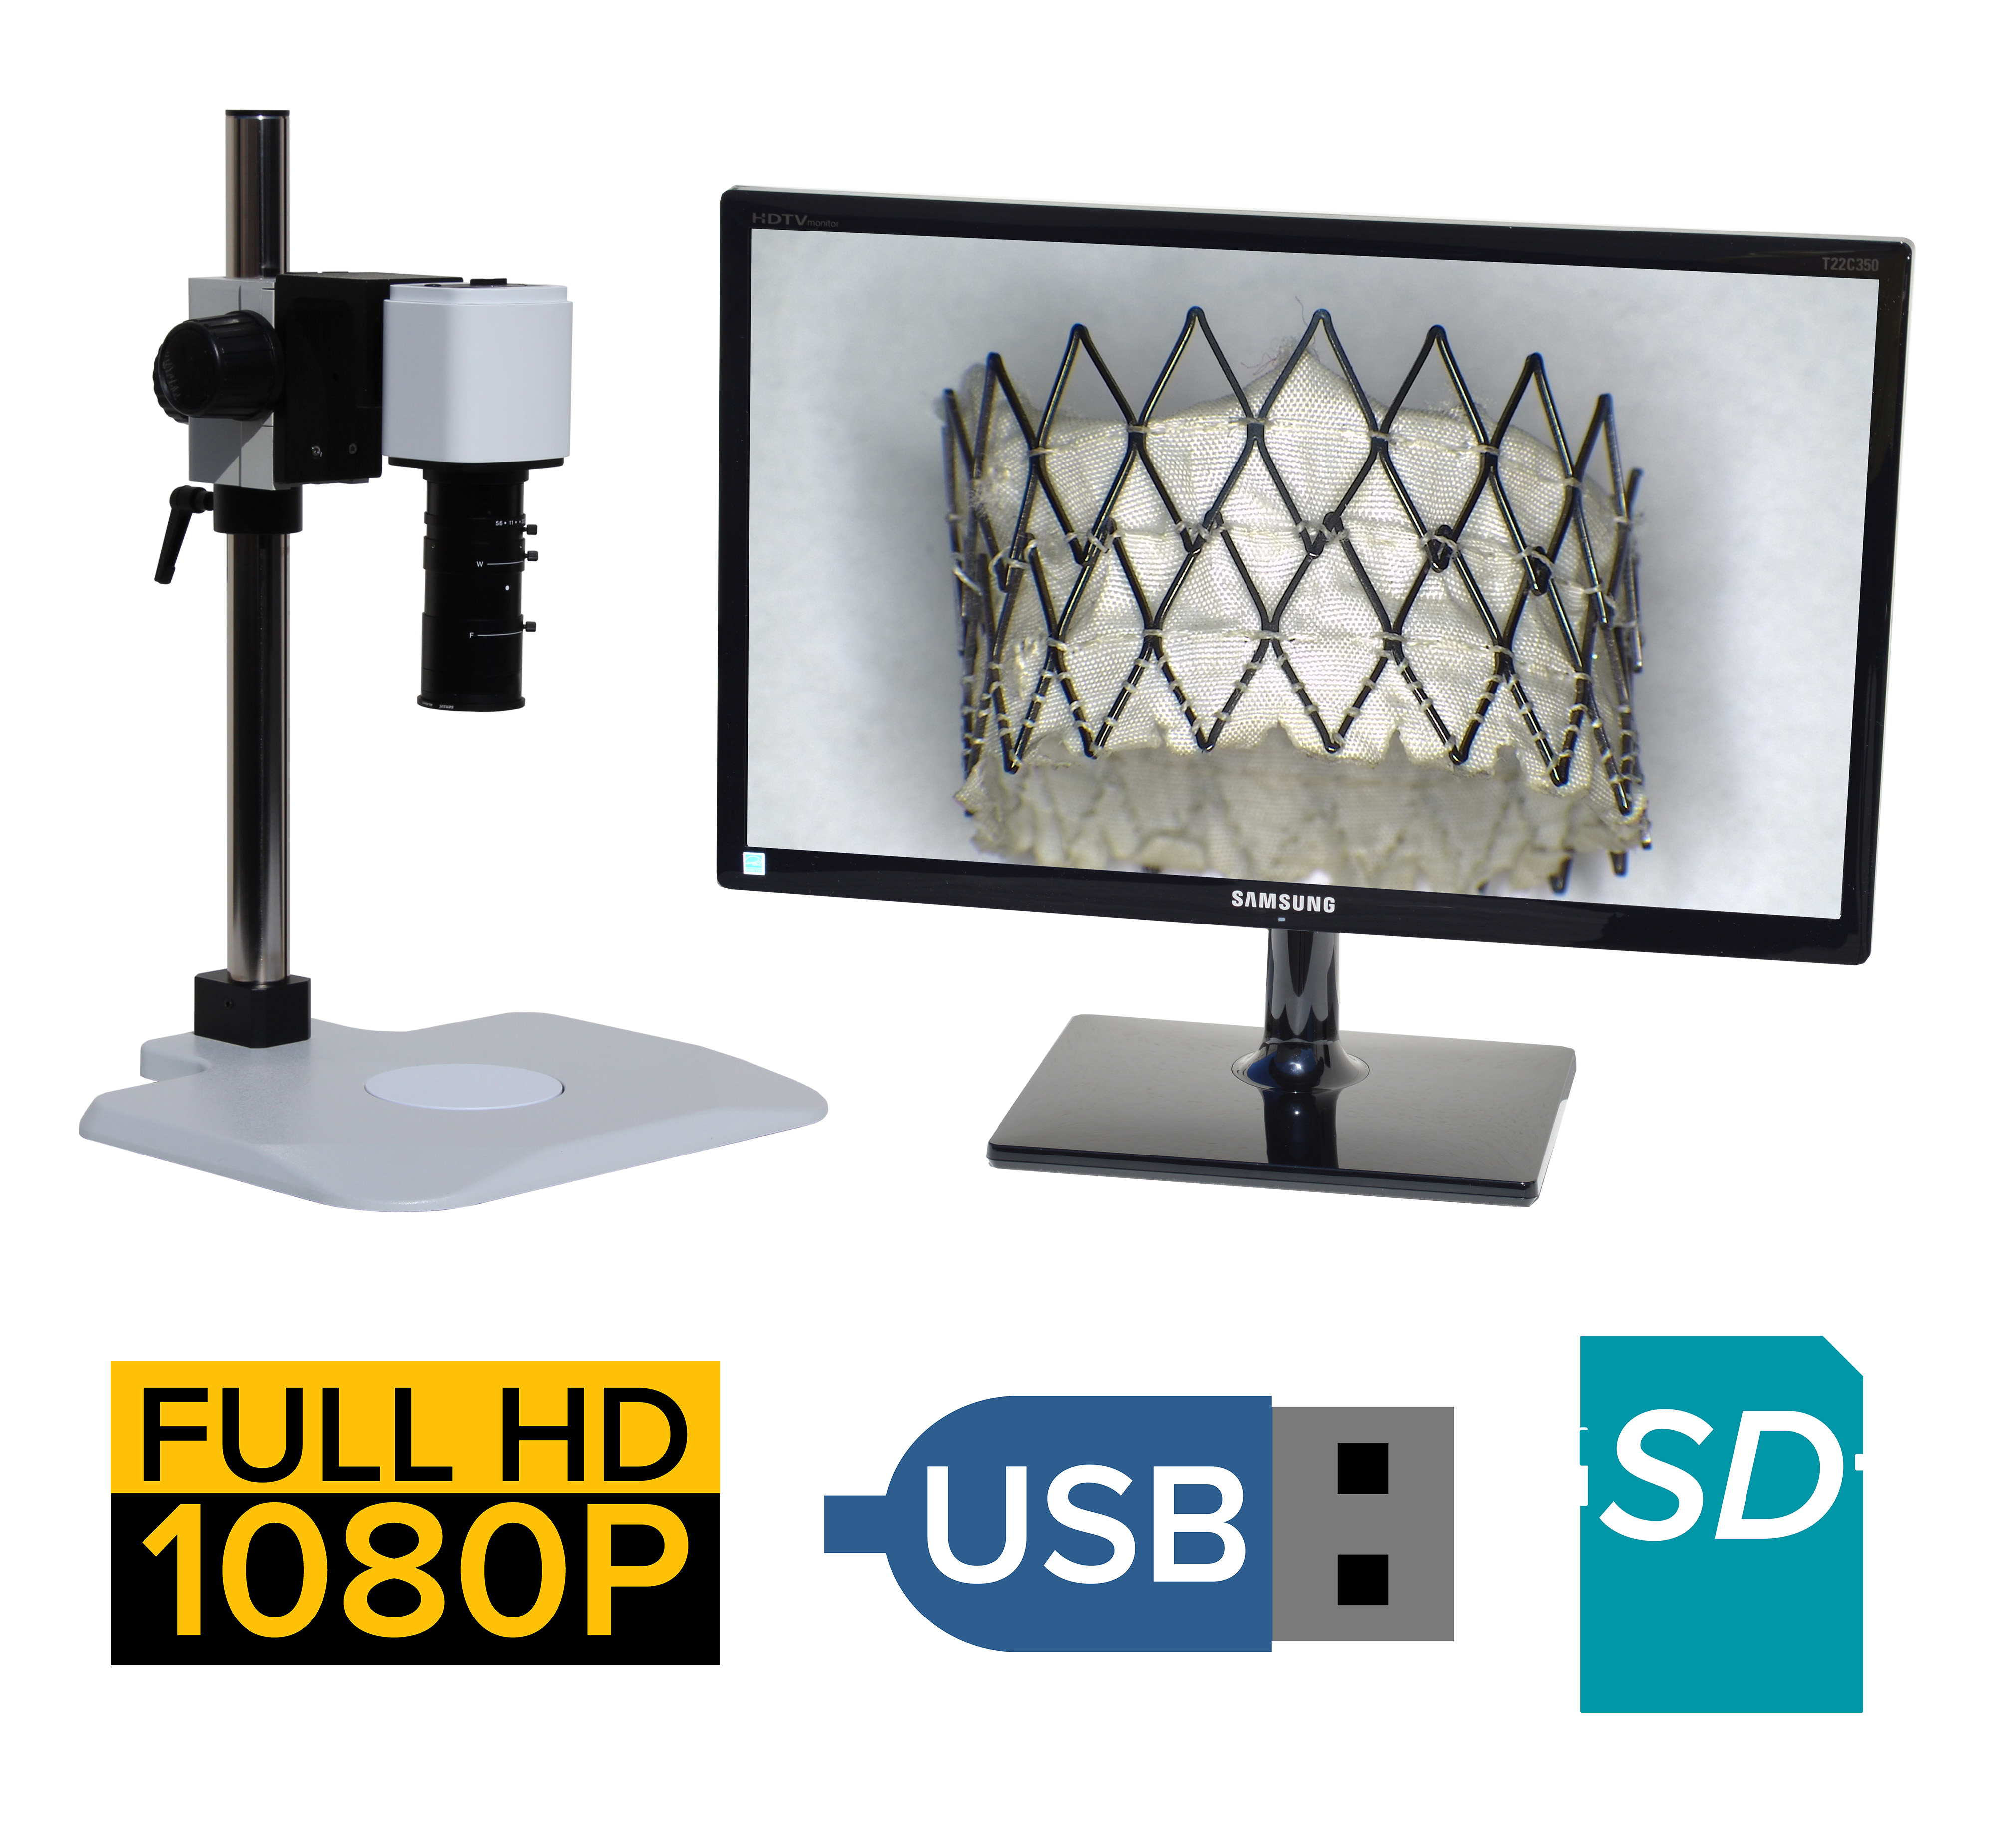 eHD807 series 2x-100x or 4x-200x + HD1080p + SD Card + USB + Measurement Option [Starting at $1500]